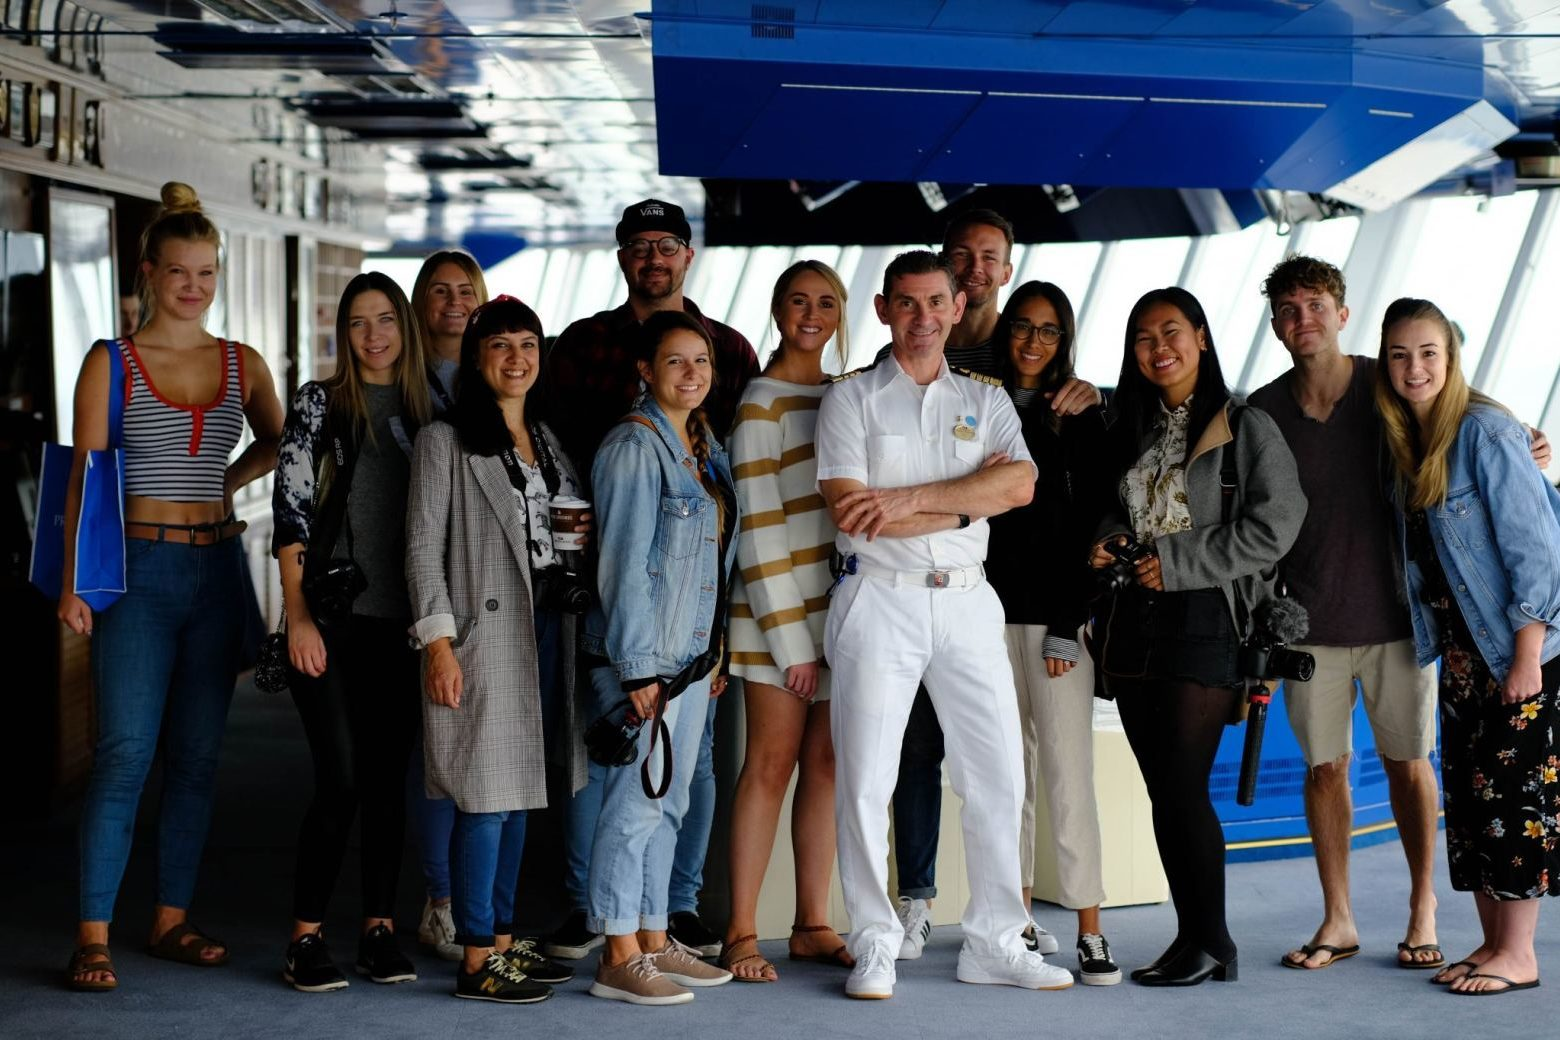 Influencers on Princess Cruise